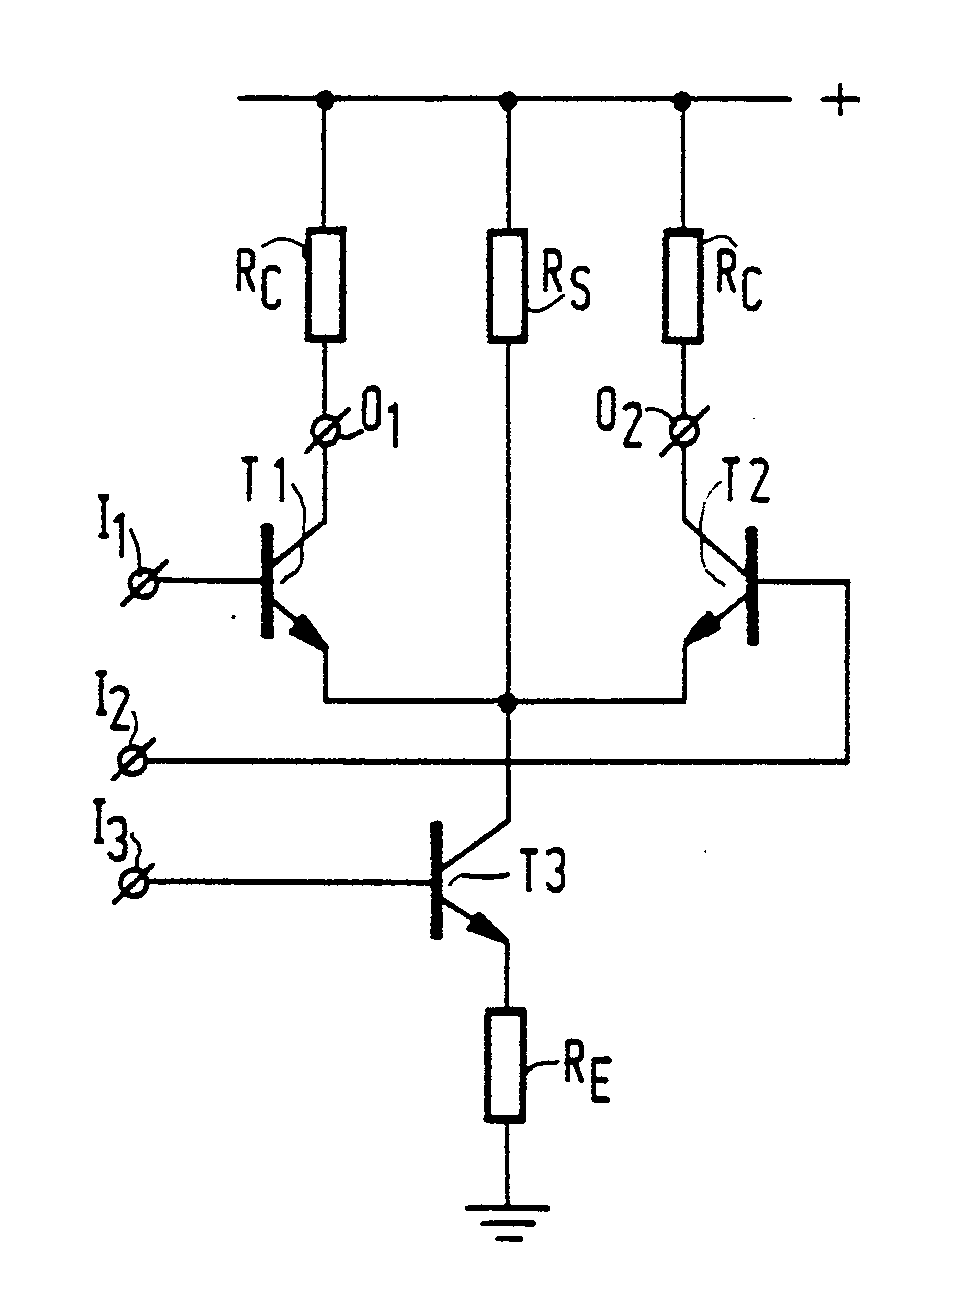 Uhf Amplifier Mixer Circuit Patent 0232560 Current Transistor Shunt Path Rs To A Supply Voltage For Conveying Constant Part Of The Direct T From This